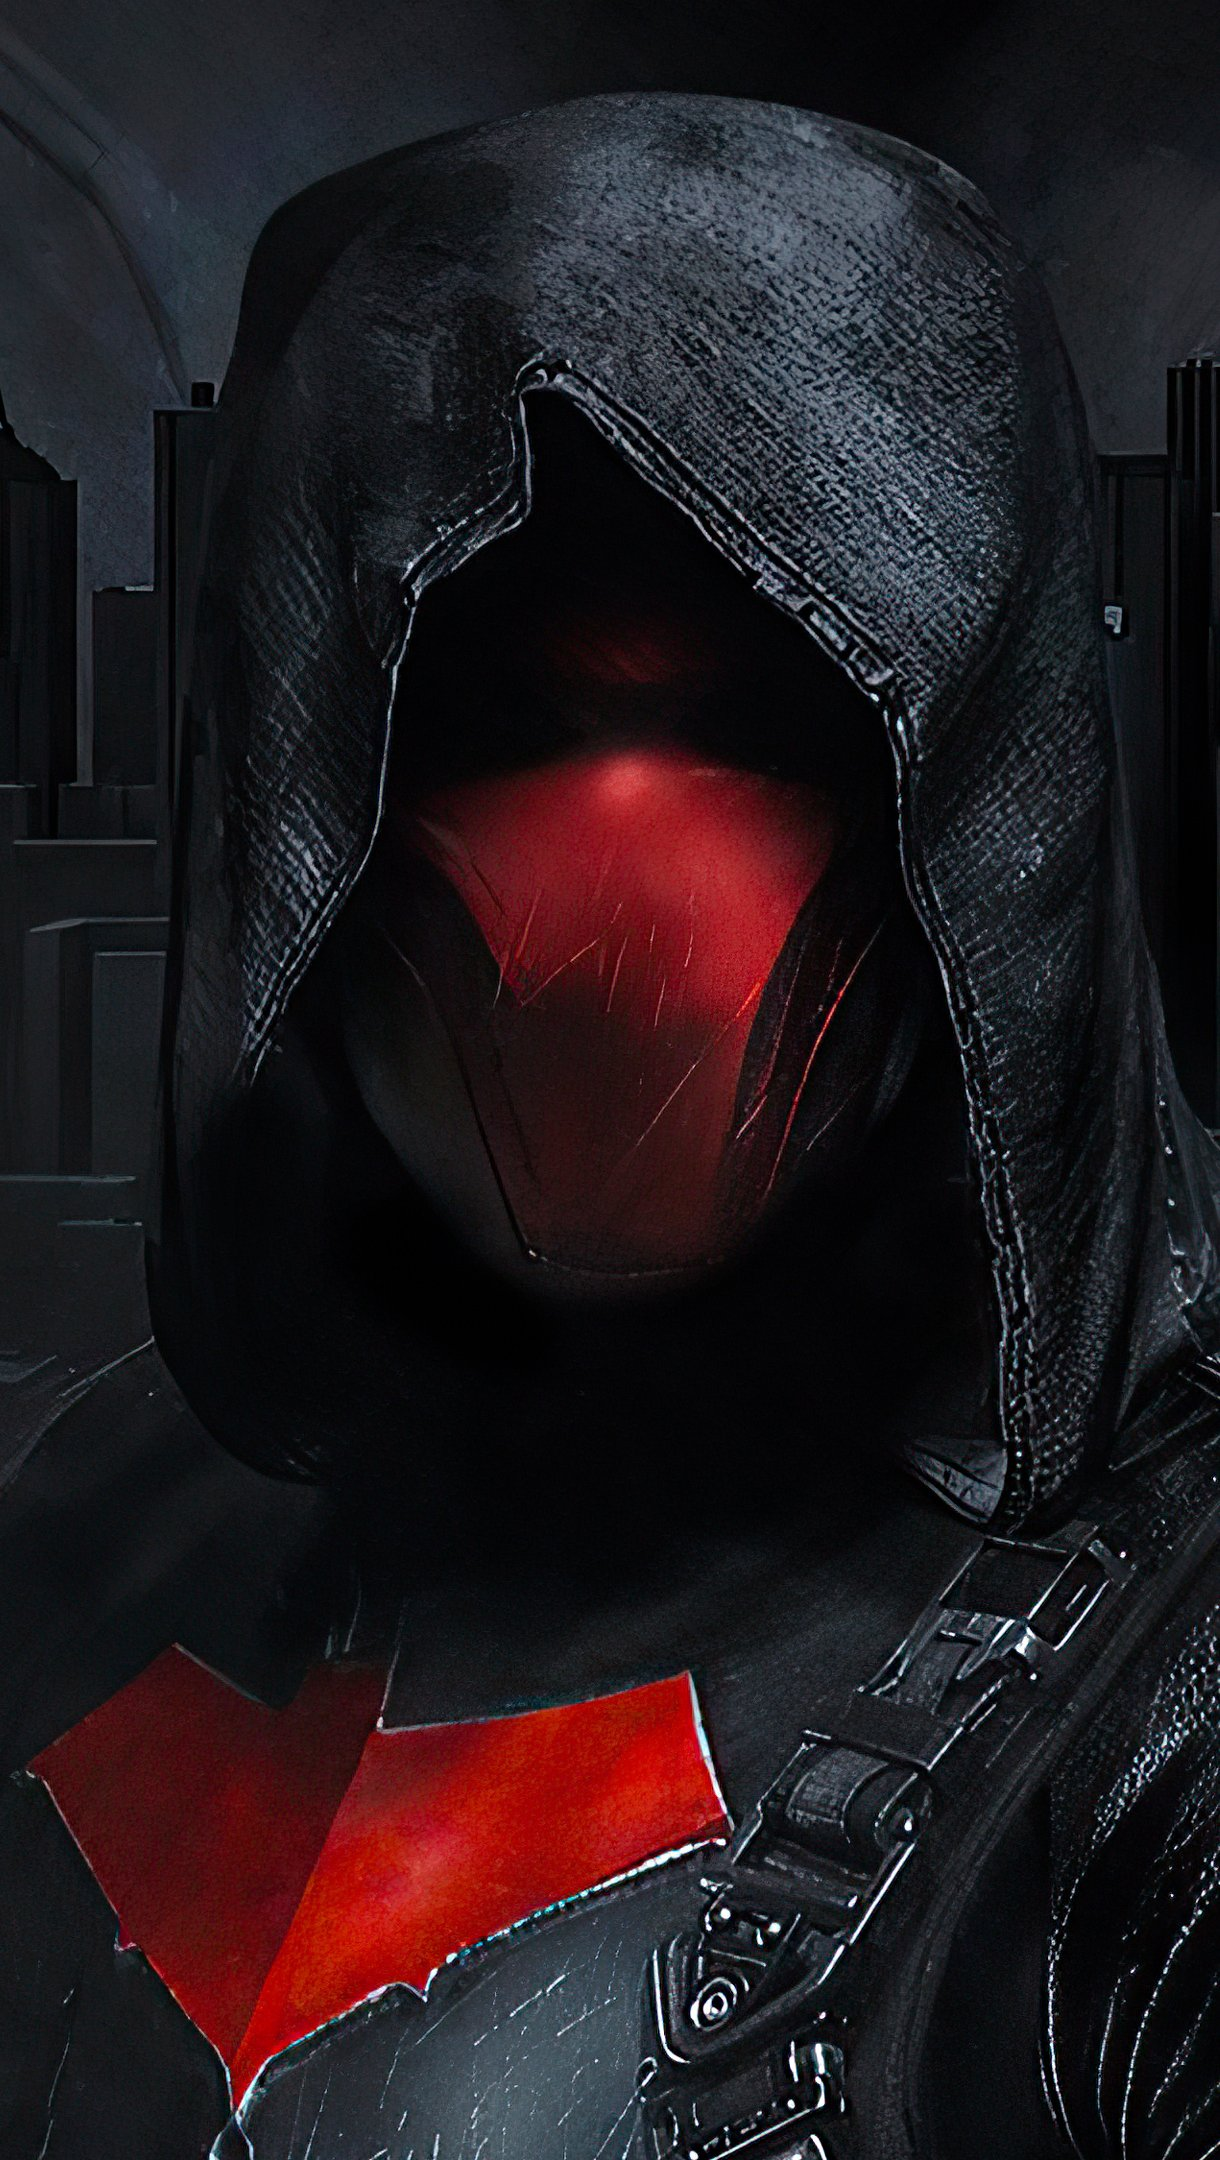 Fondos de pantalla Artwork de Red Hood 2020 Vertical